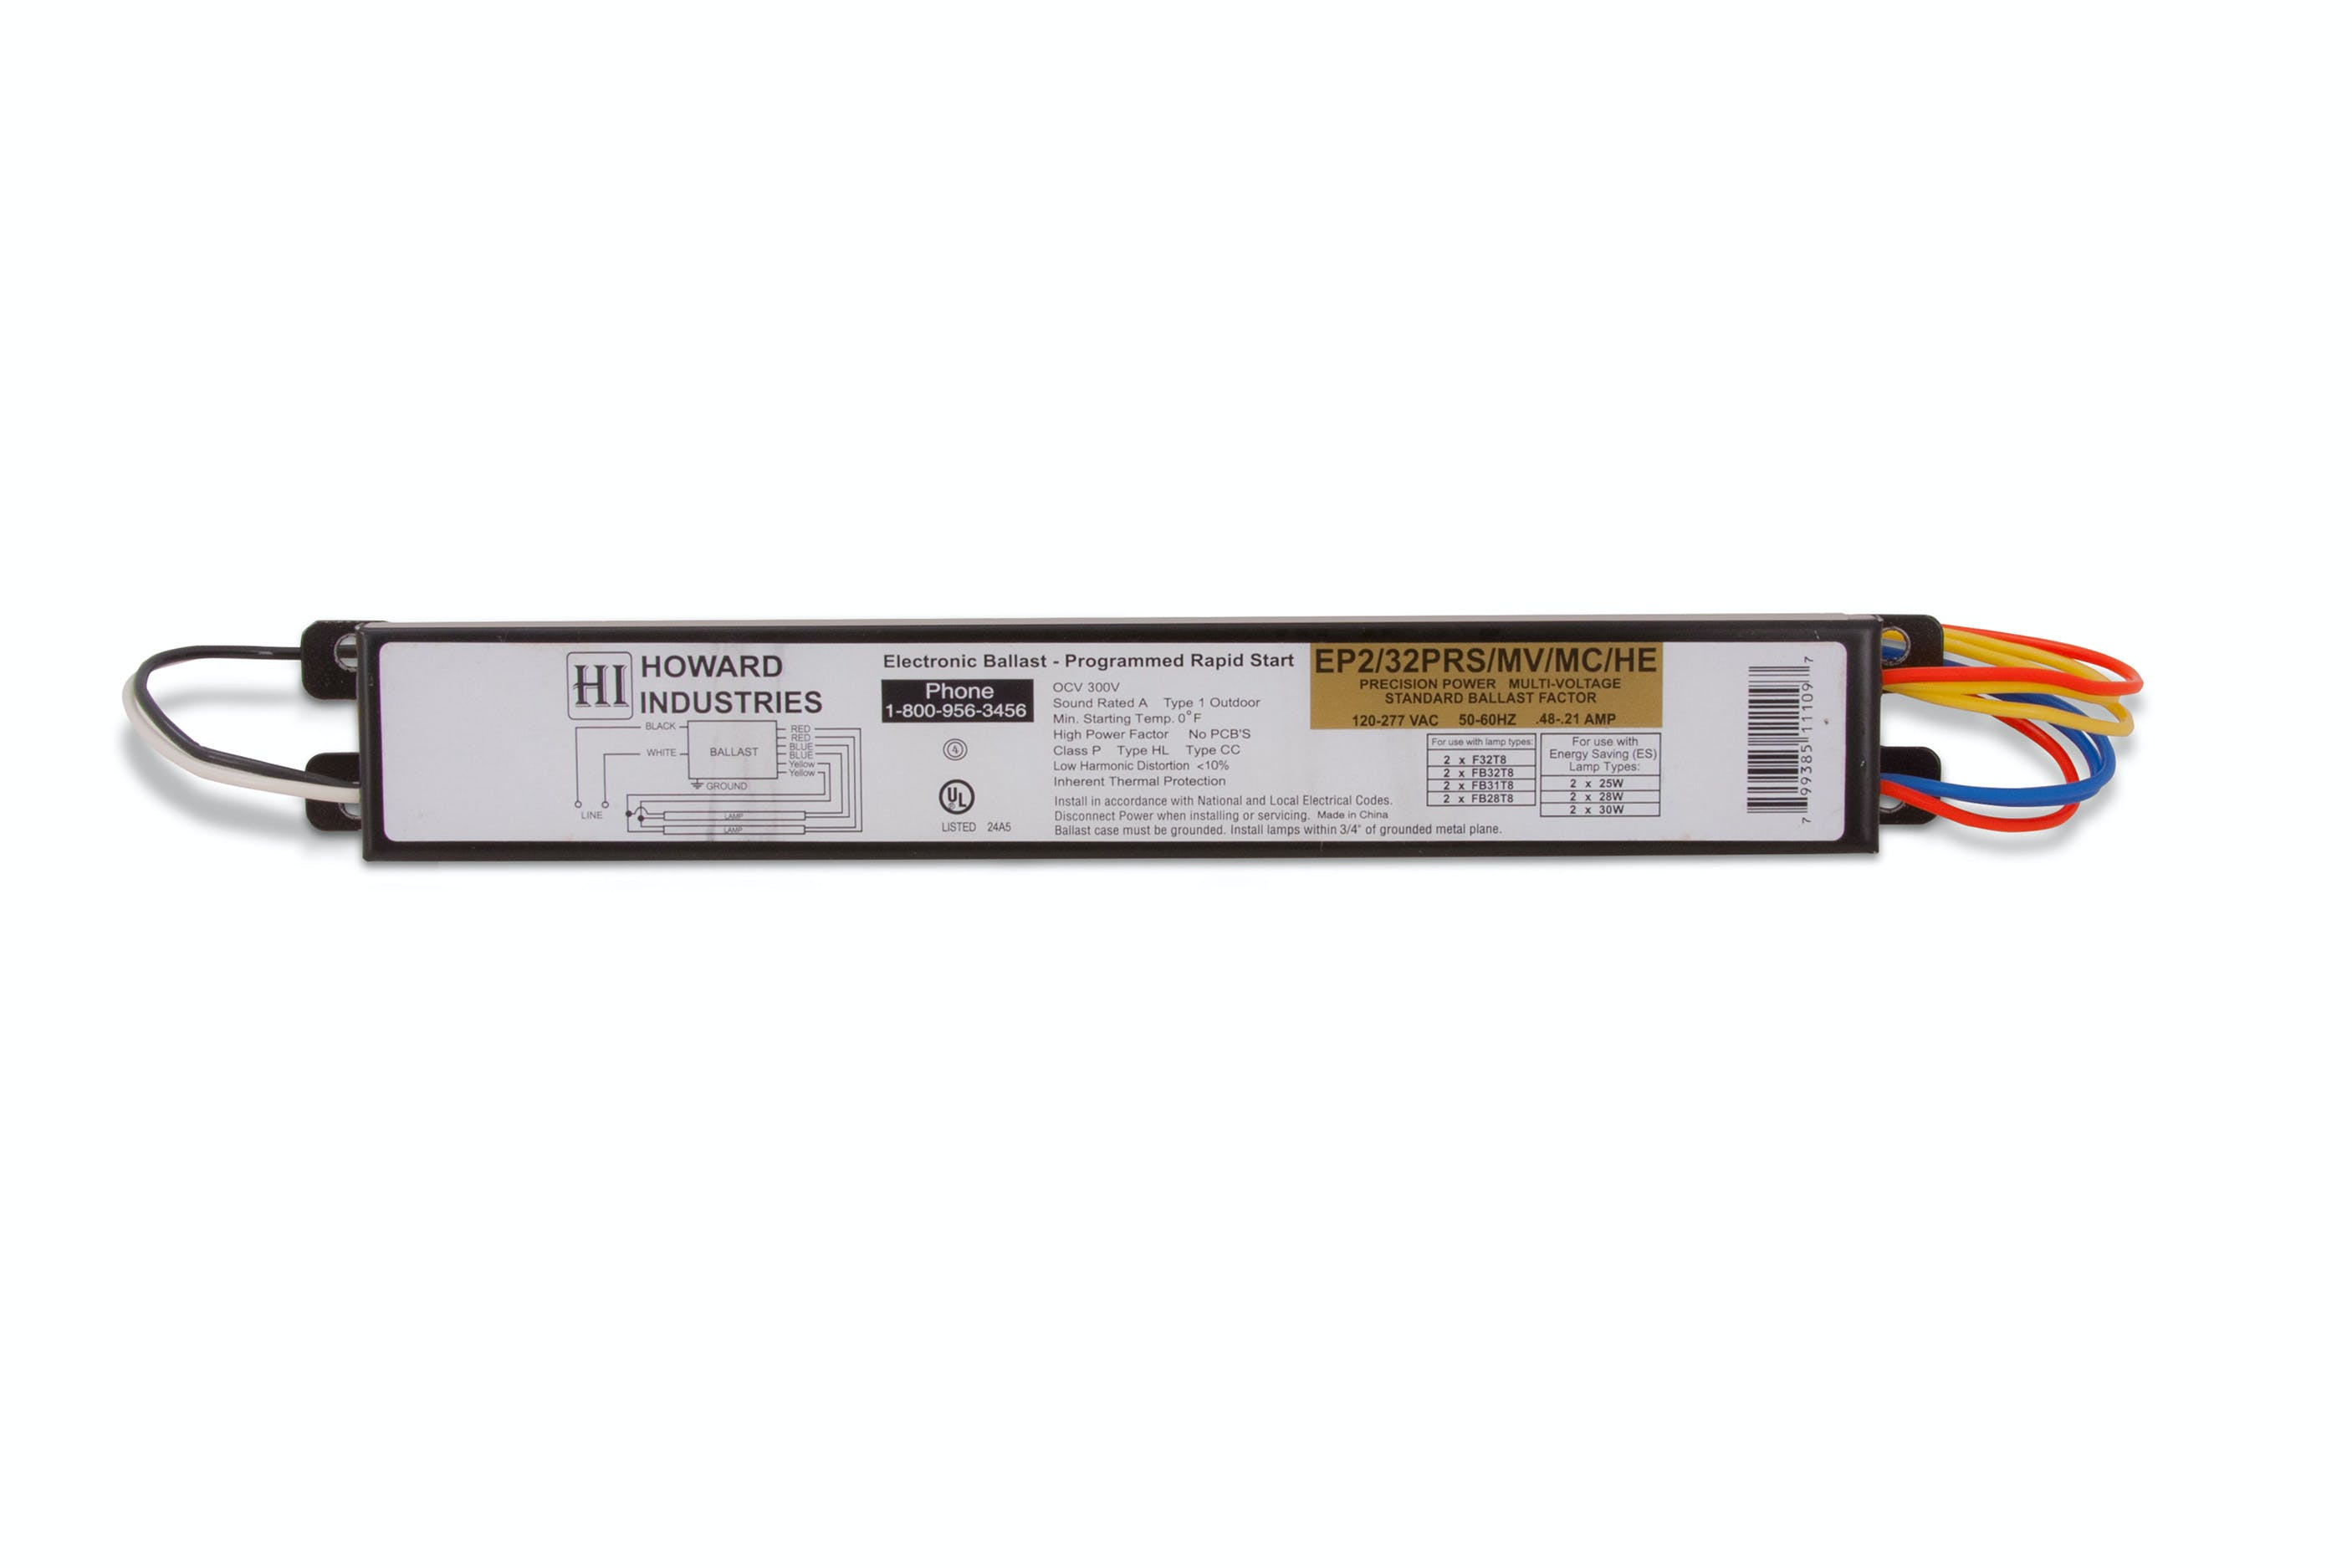 2 Lamp F32T8 Electronic Fluorescent Ballast - EP2/32PRS/MV/MC/HE - sold by RelightDepot.com